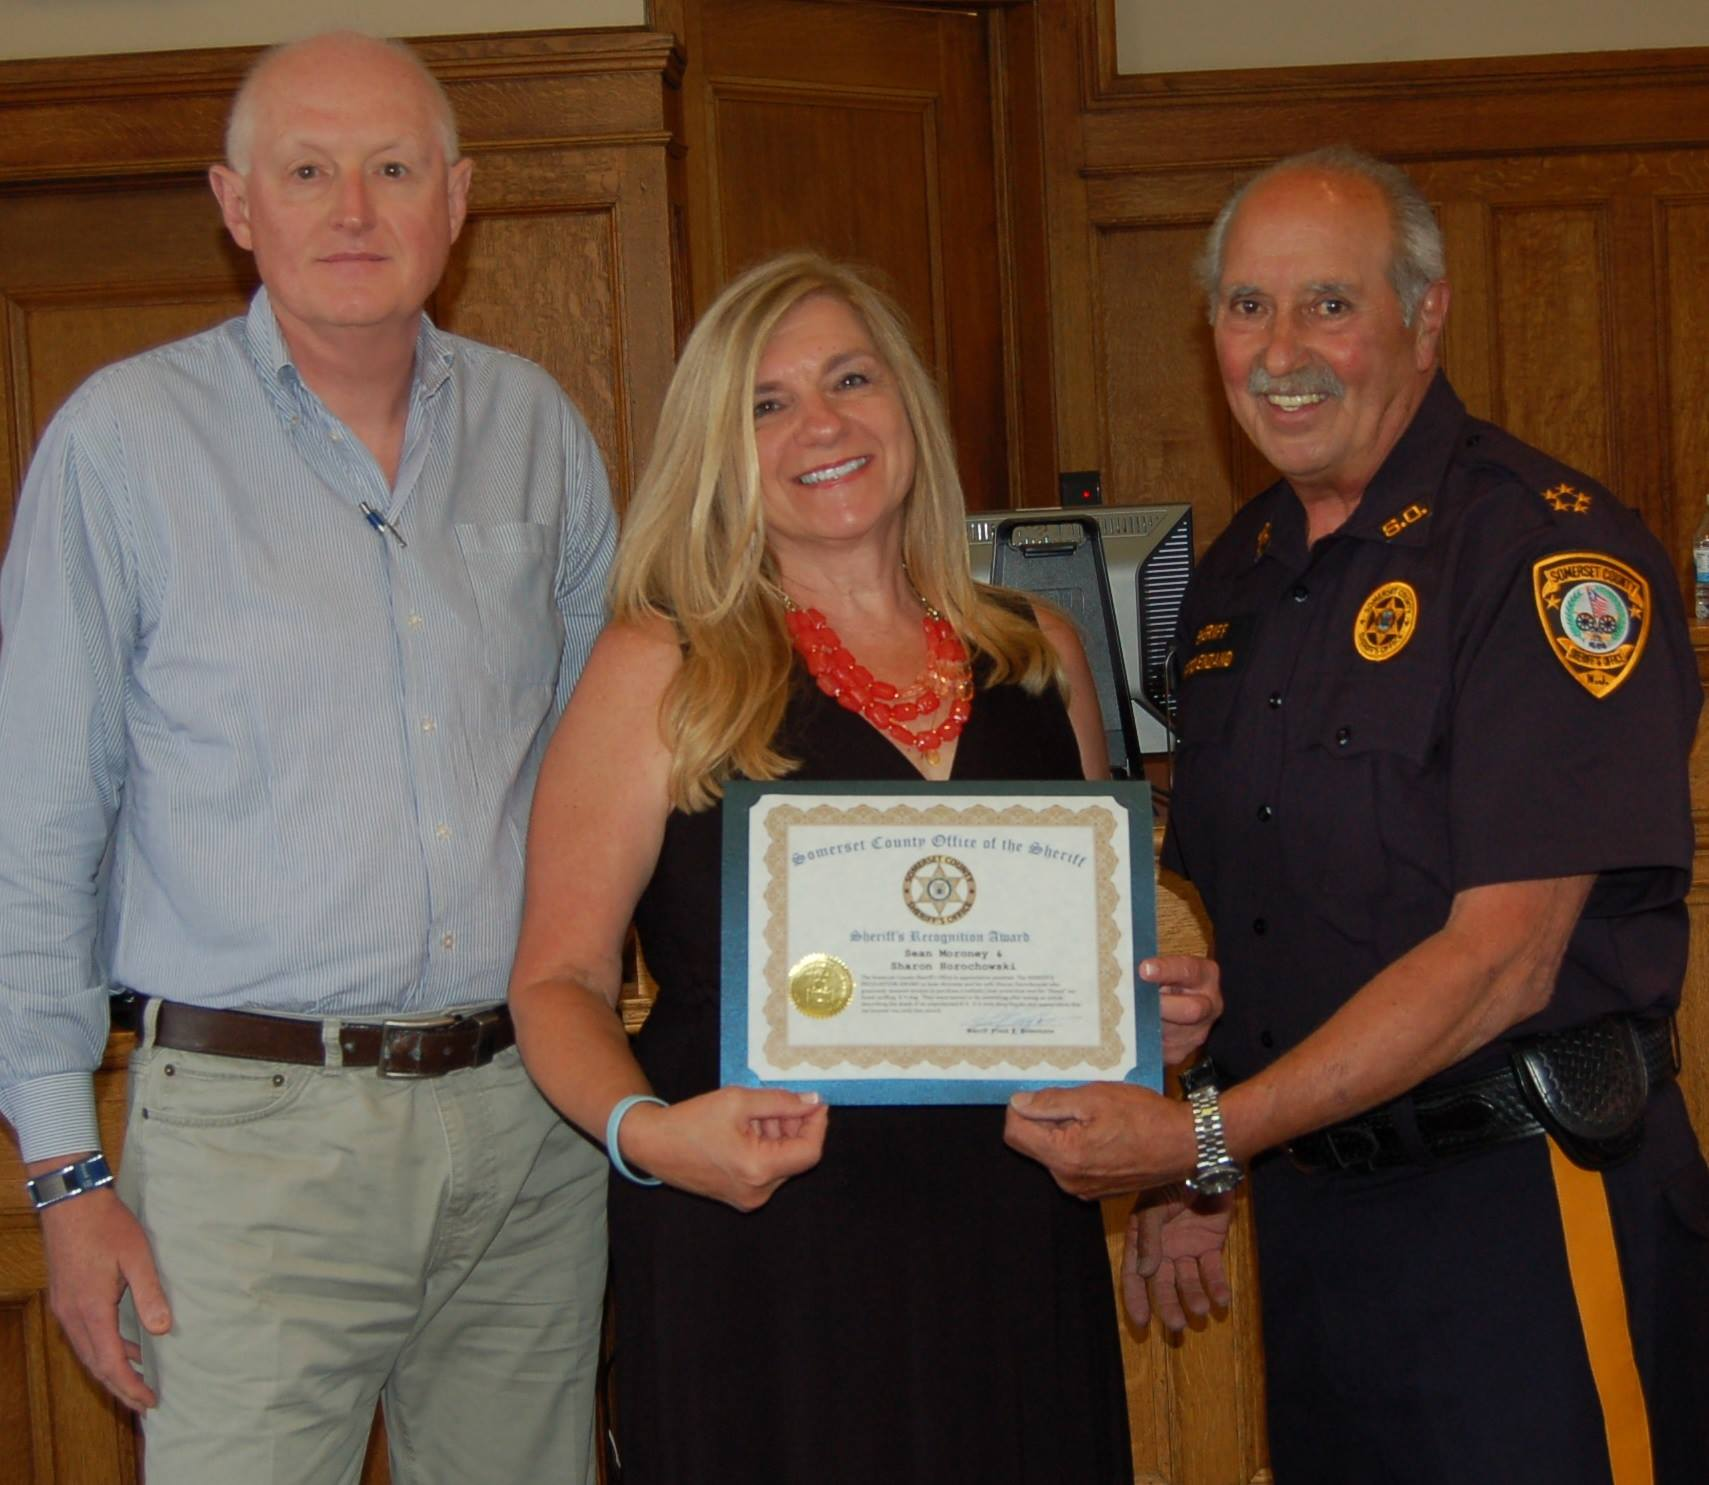 New jersey somerset county flagtown - Hillsborough Residents Sean Moroney Left And Sharon Horochowski Received The Sheriff S Recognition Award From Sheriff Frank Provenzano